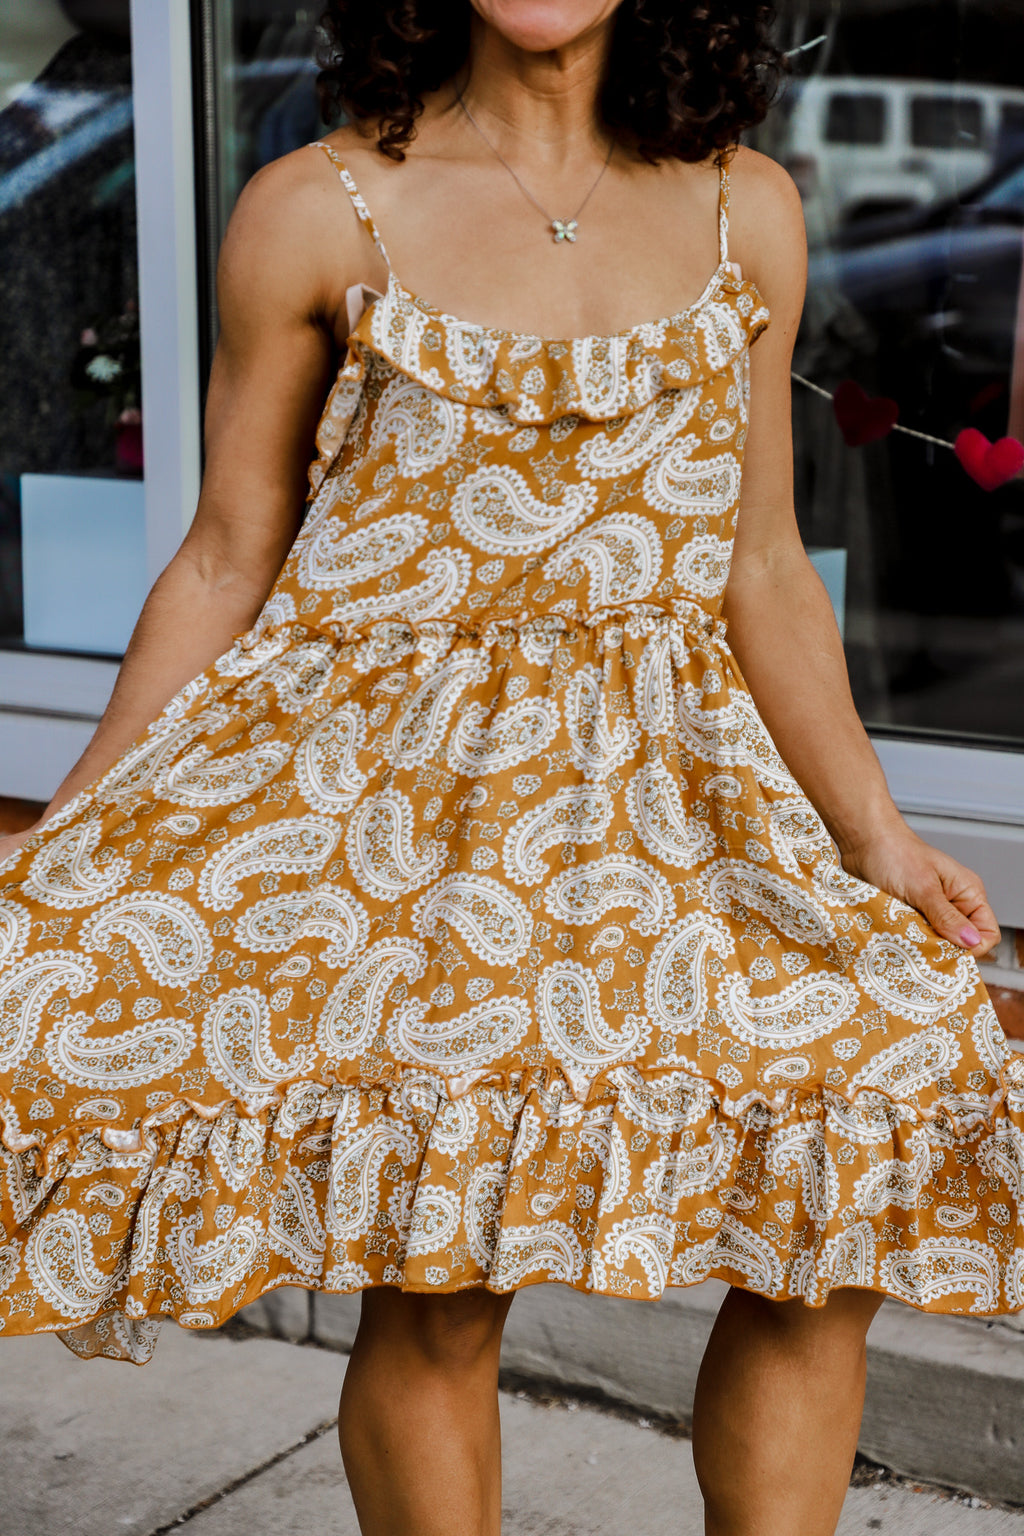 Greater Animal Print Top - The Rooted Shoppe